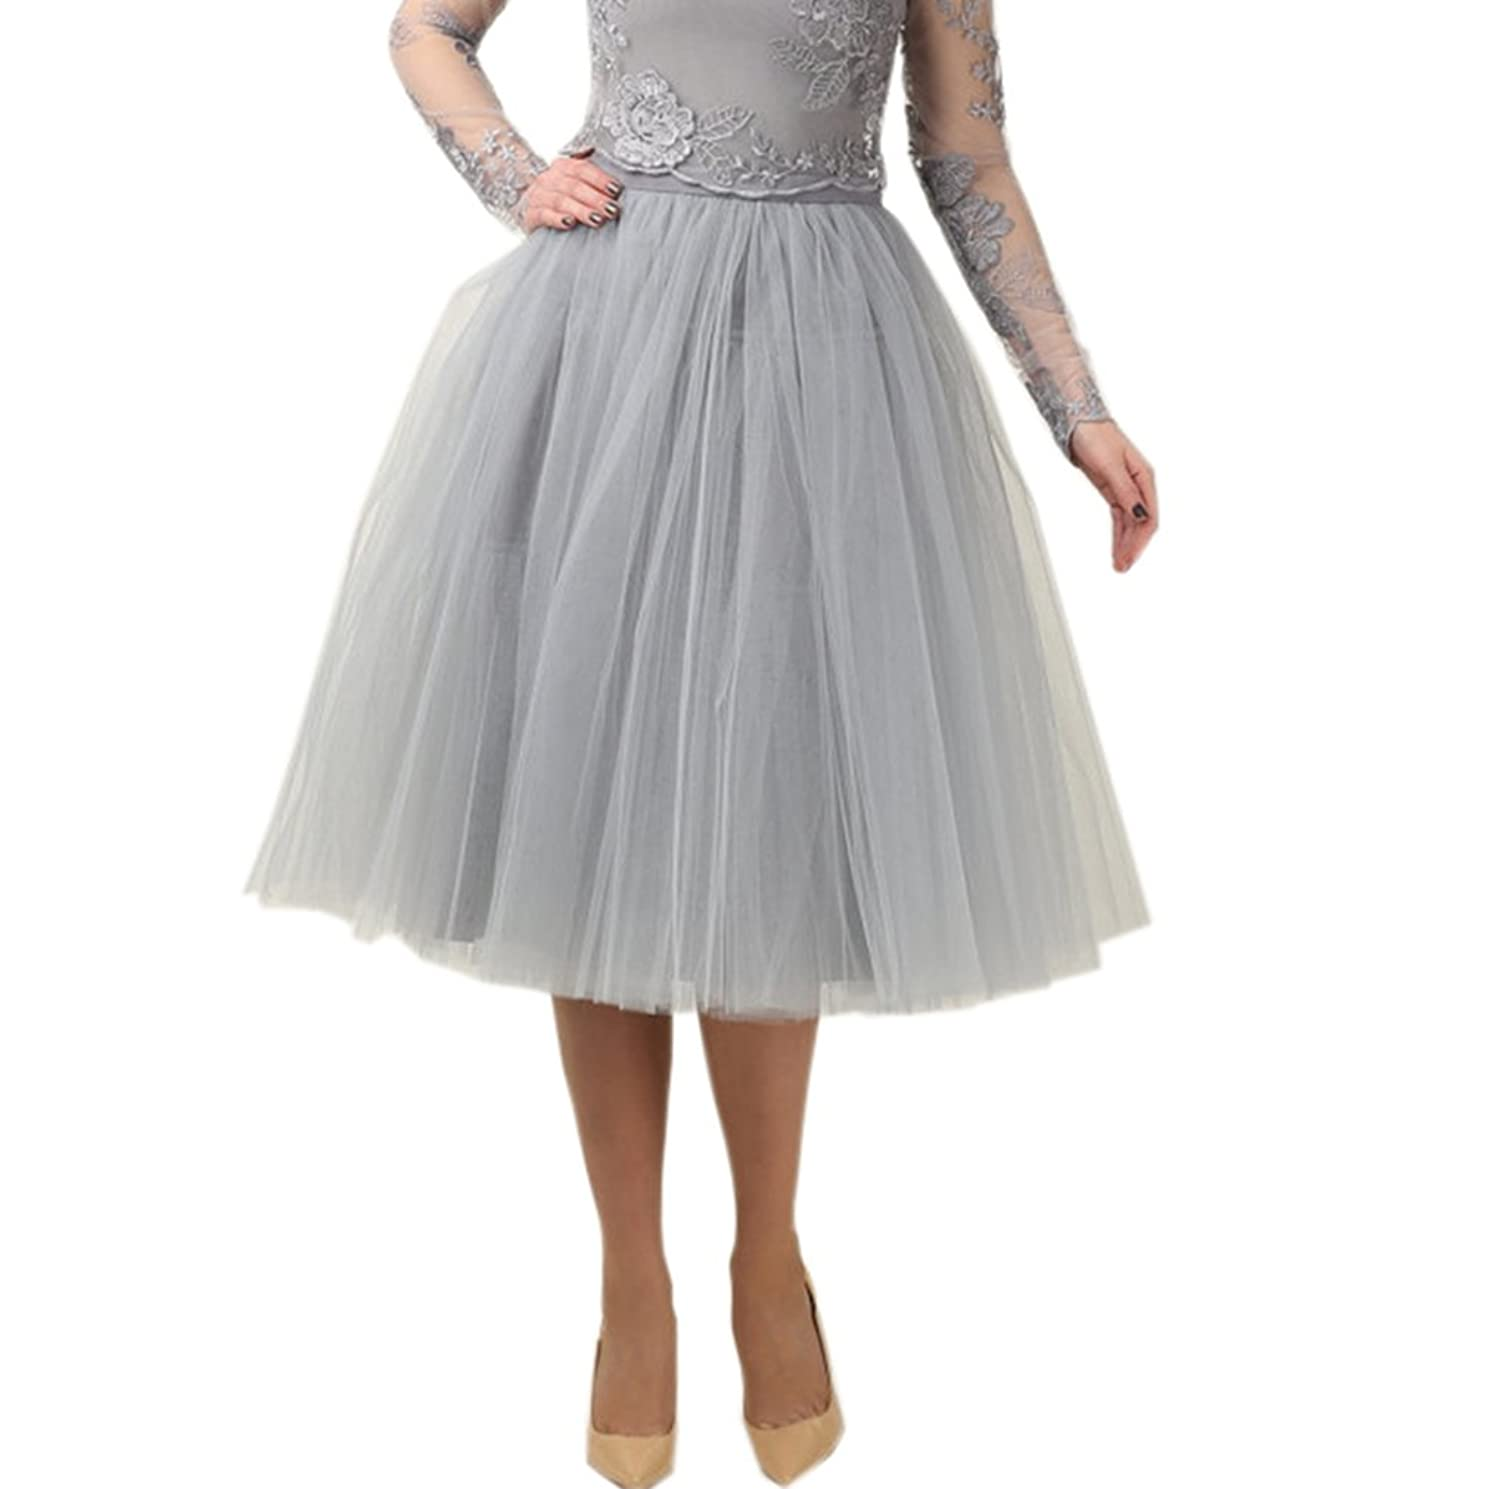 Lisong Women Tea Length 5-Layered Tulle A-line Tutu Party Prom Skirt